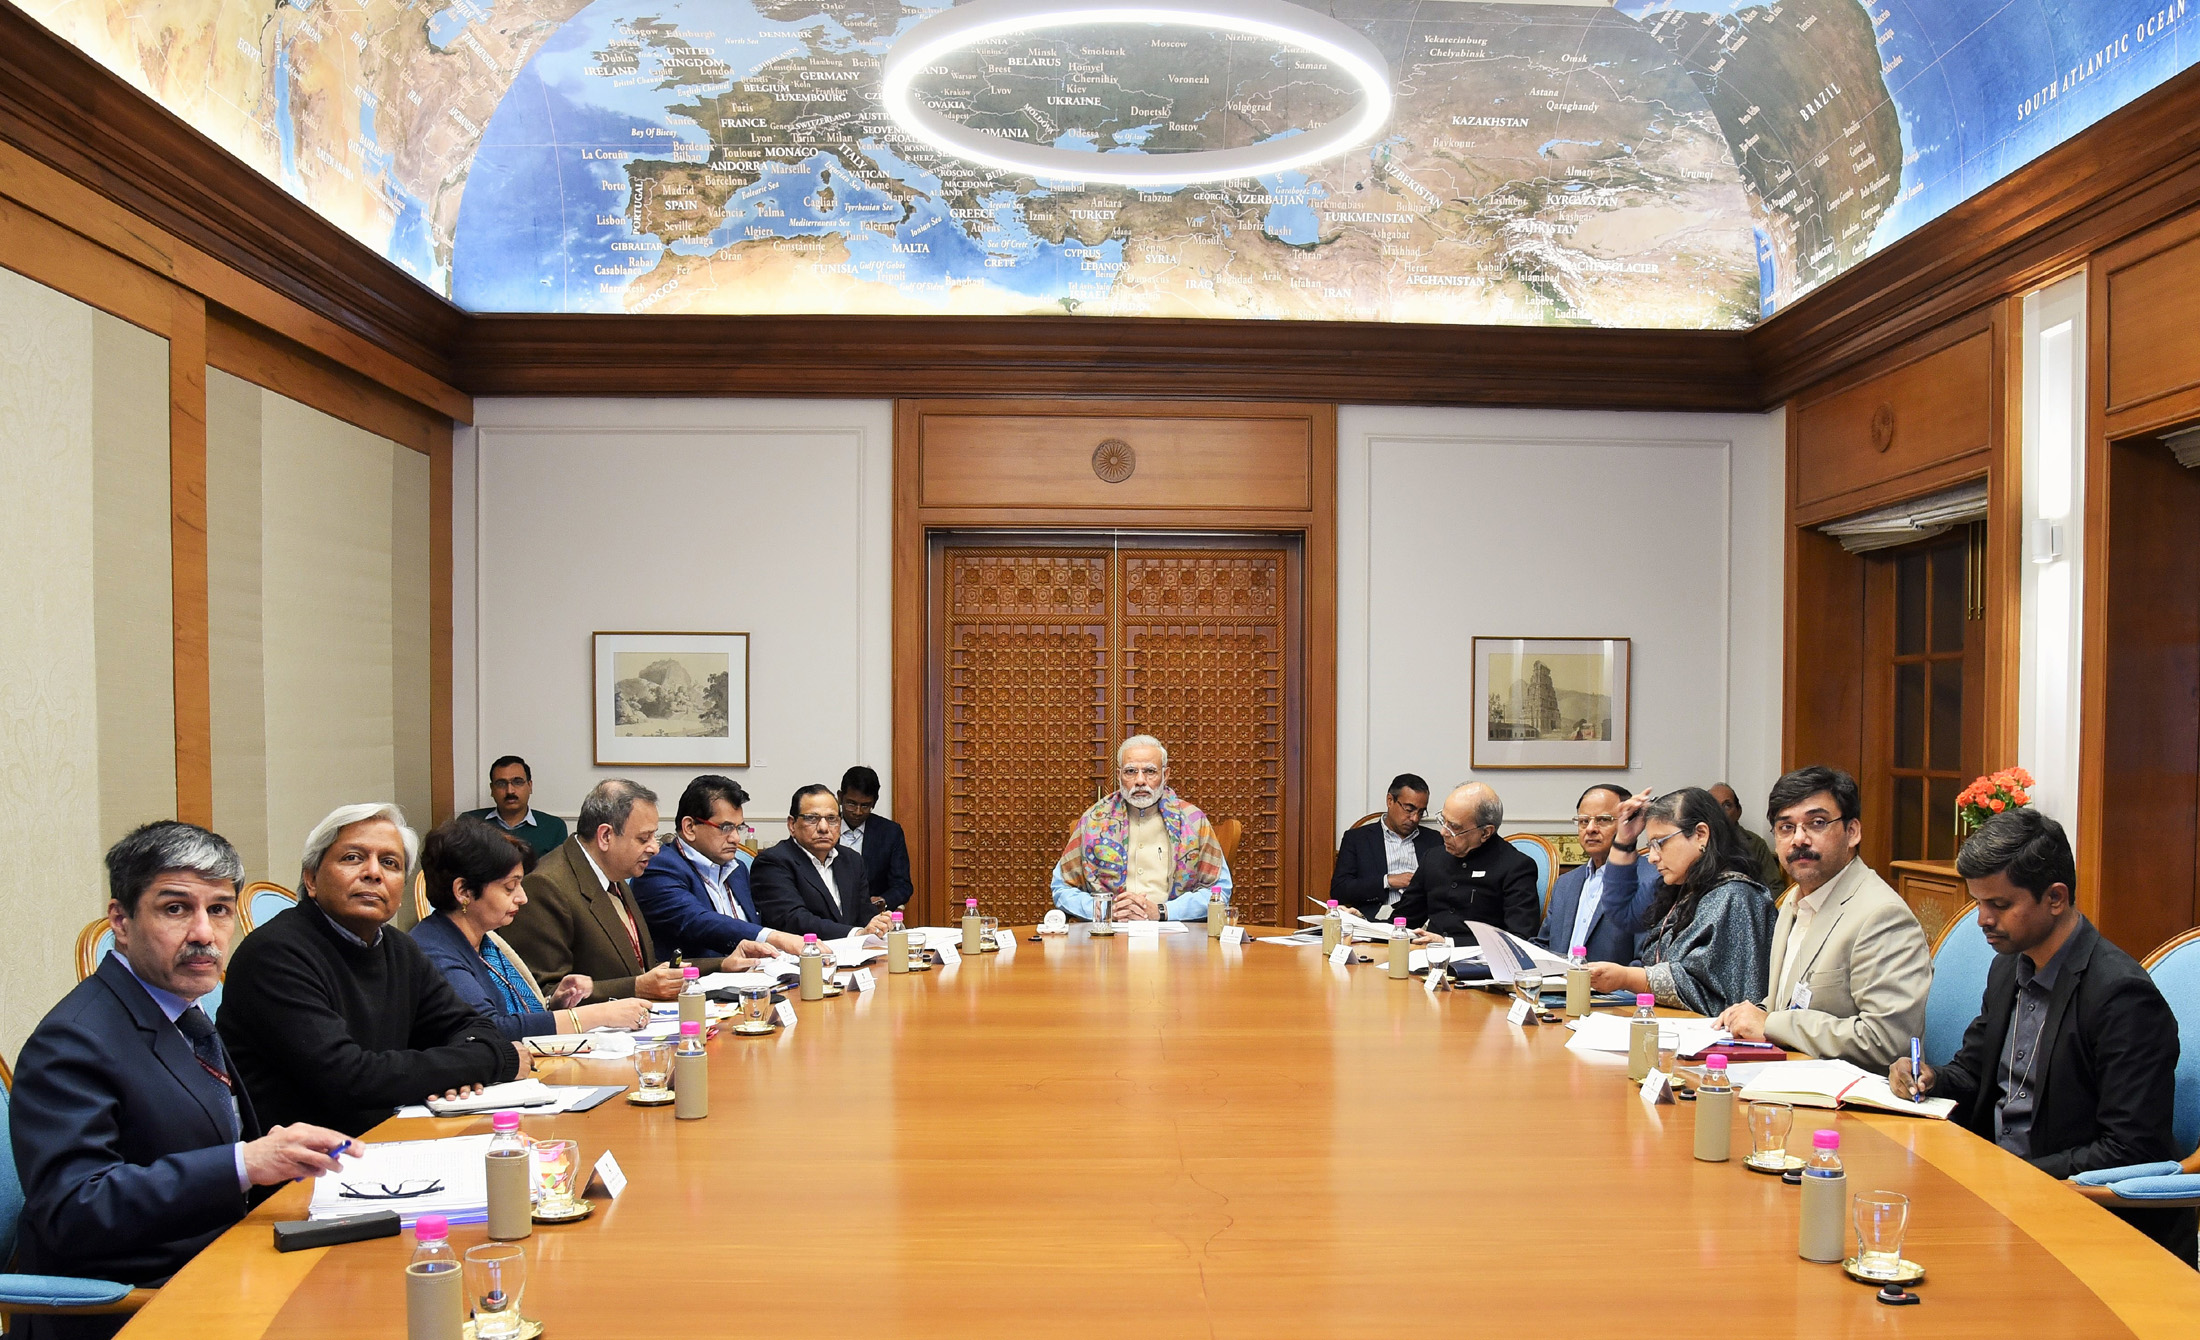 The Prime Minister, Shri Narendra Modi chairing the high-level review meeting on the progress and efforts being made to prevent and reduce under-nutrition and related problems in India, in New Delhi on November 24, 2017.